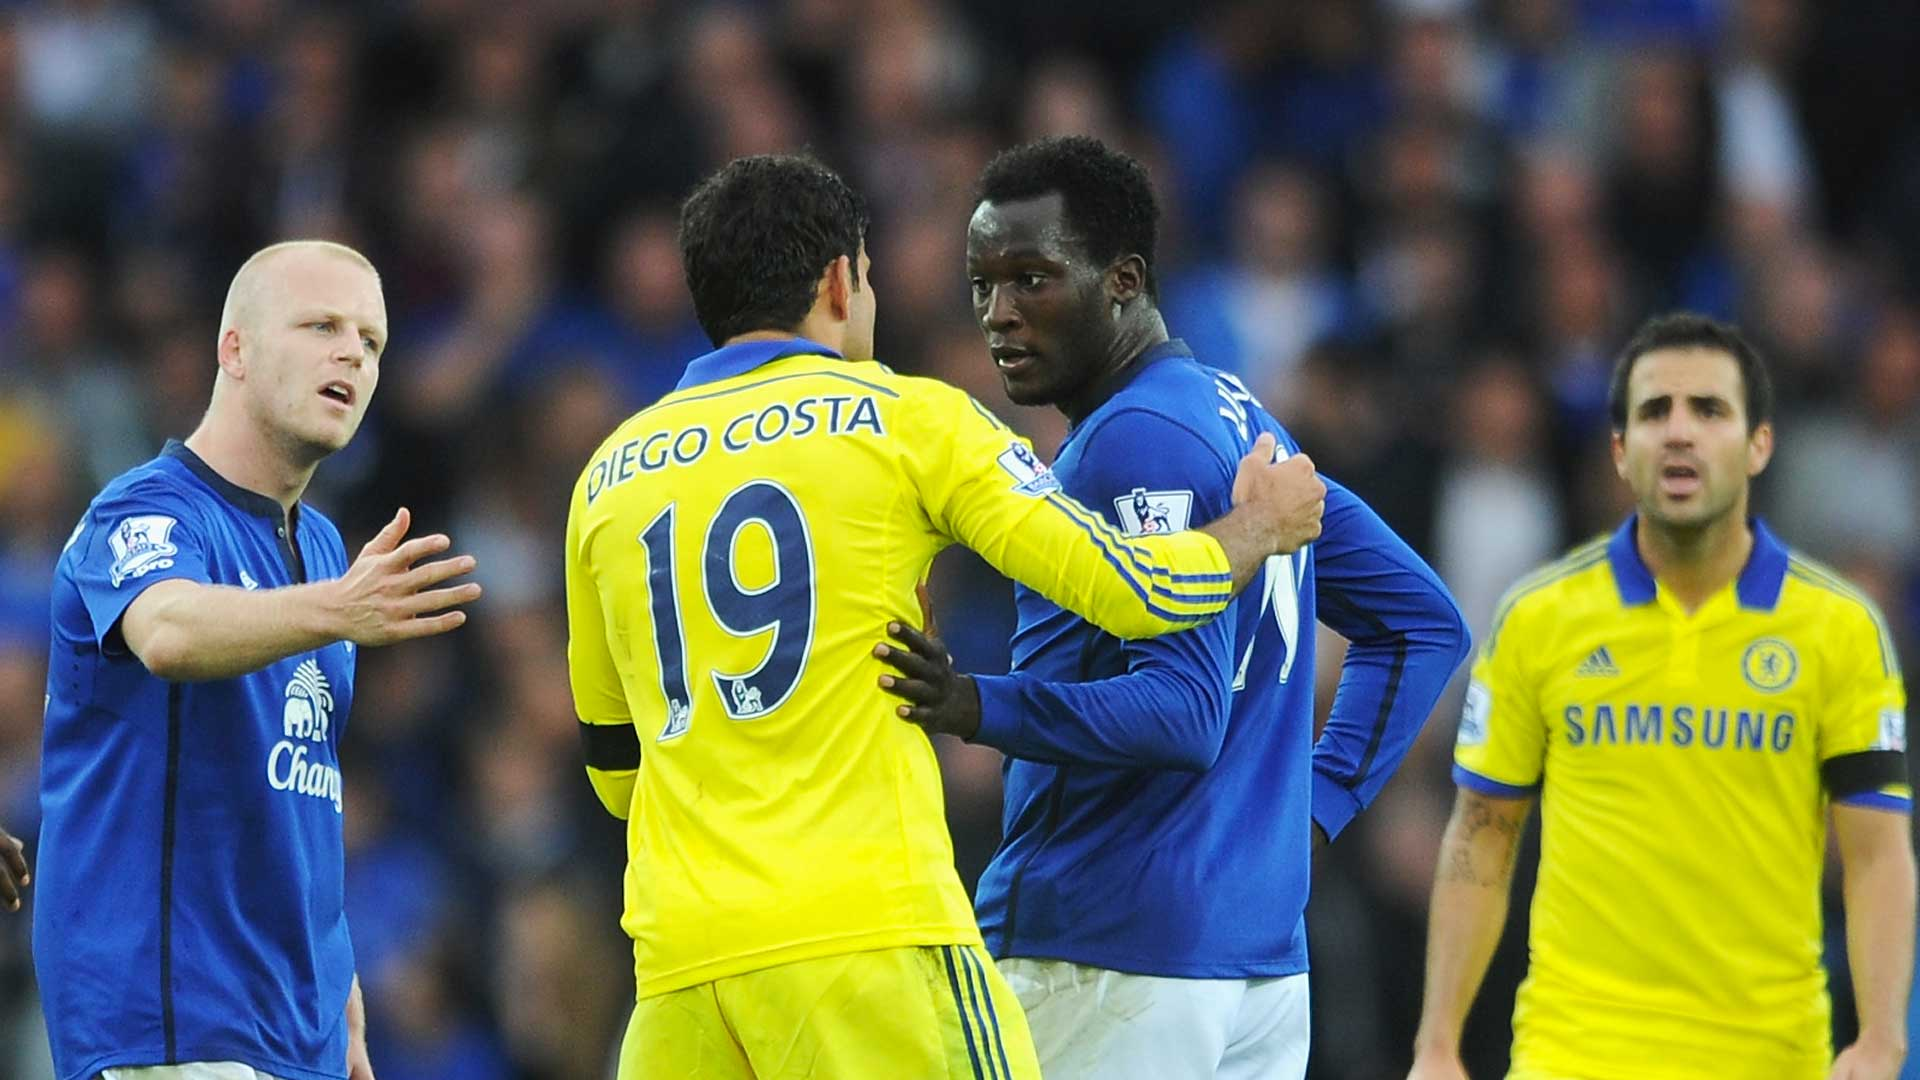 Selling Lukaku was the best option for Chelsea